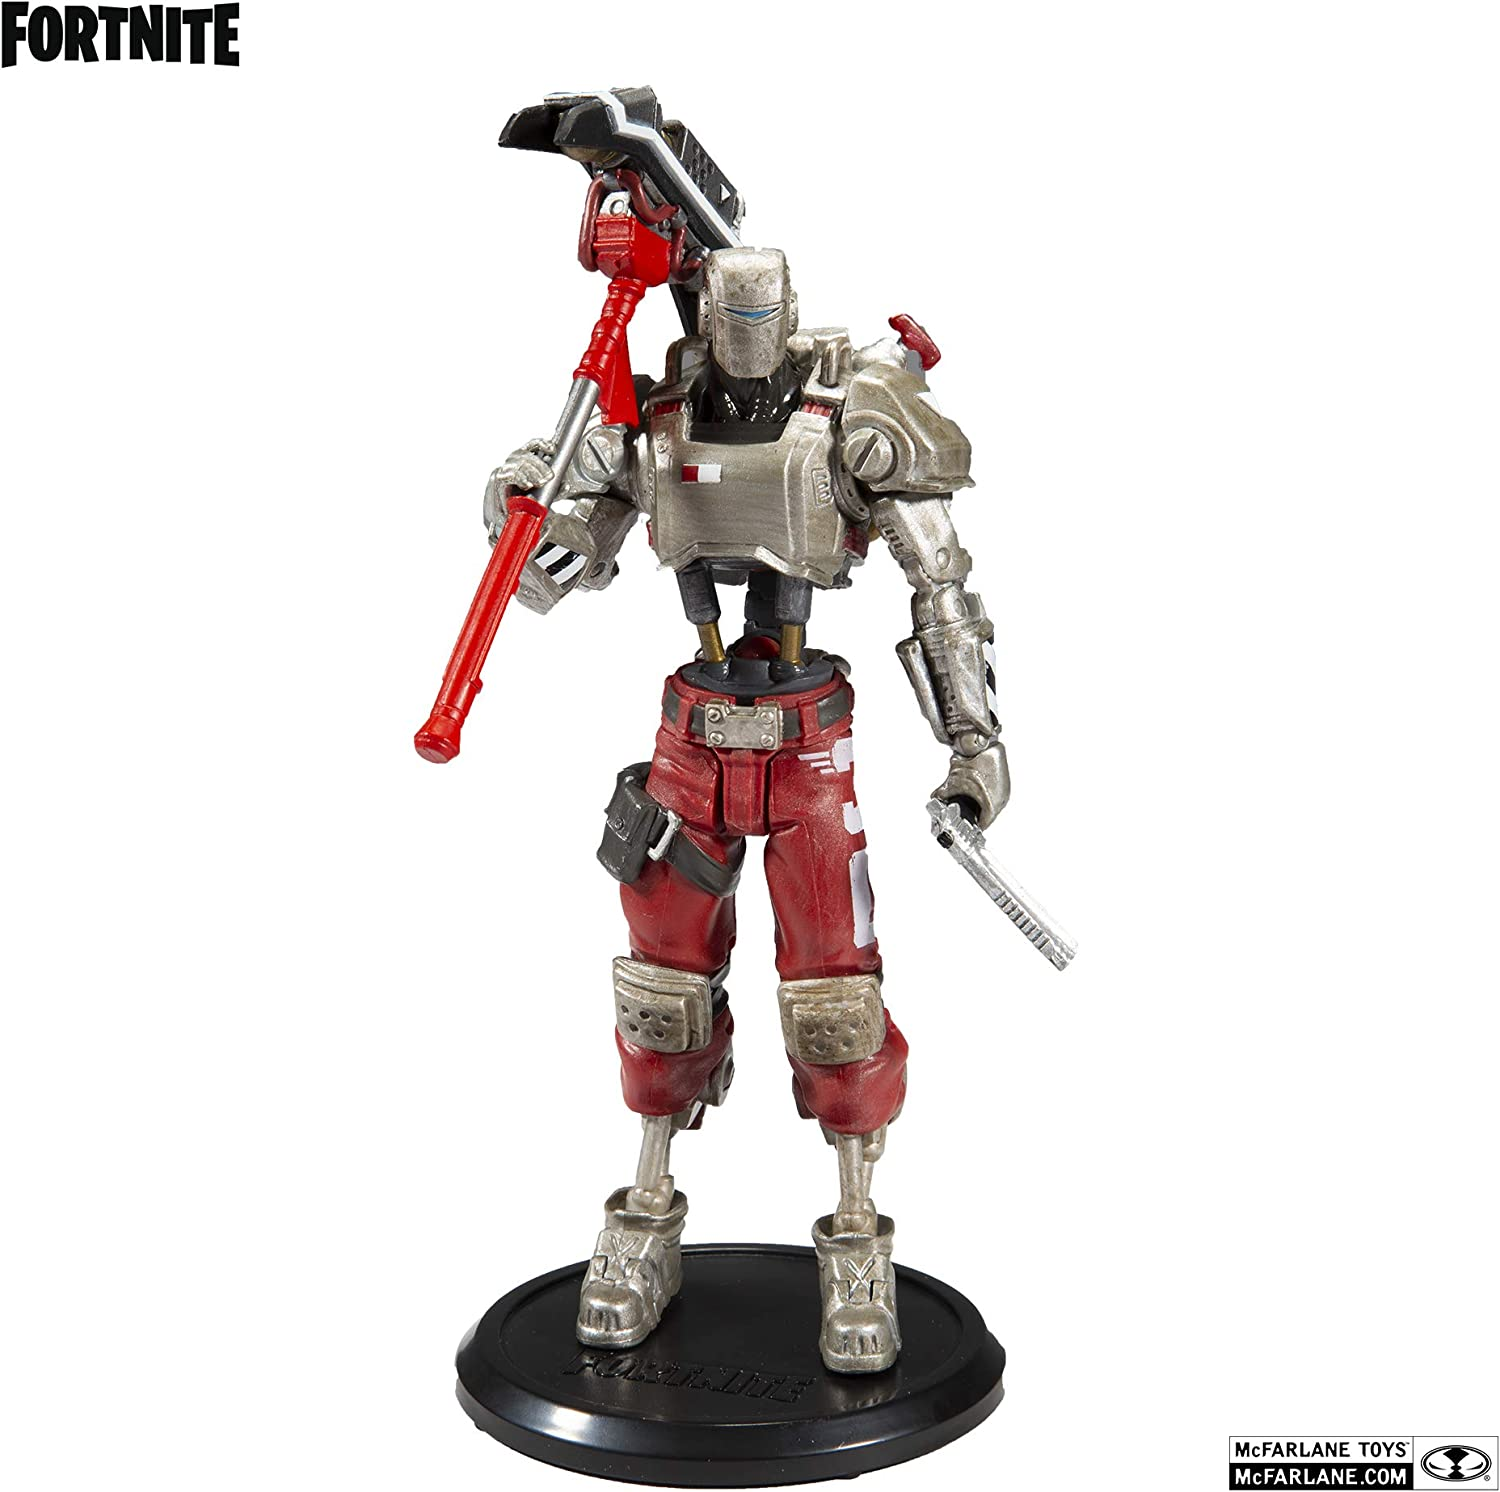 McFarlane Toys Fortnite A.I.M. Premium Action Figure